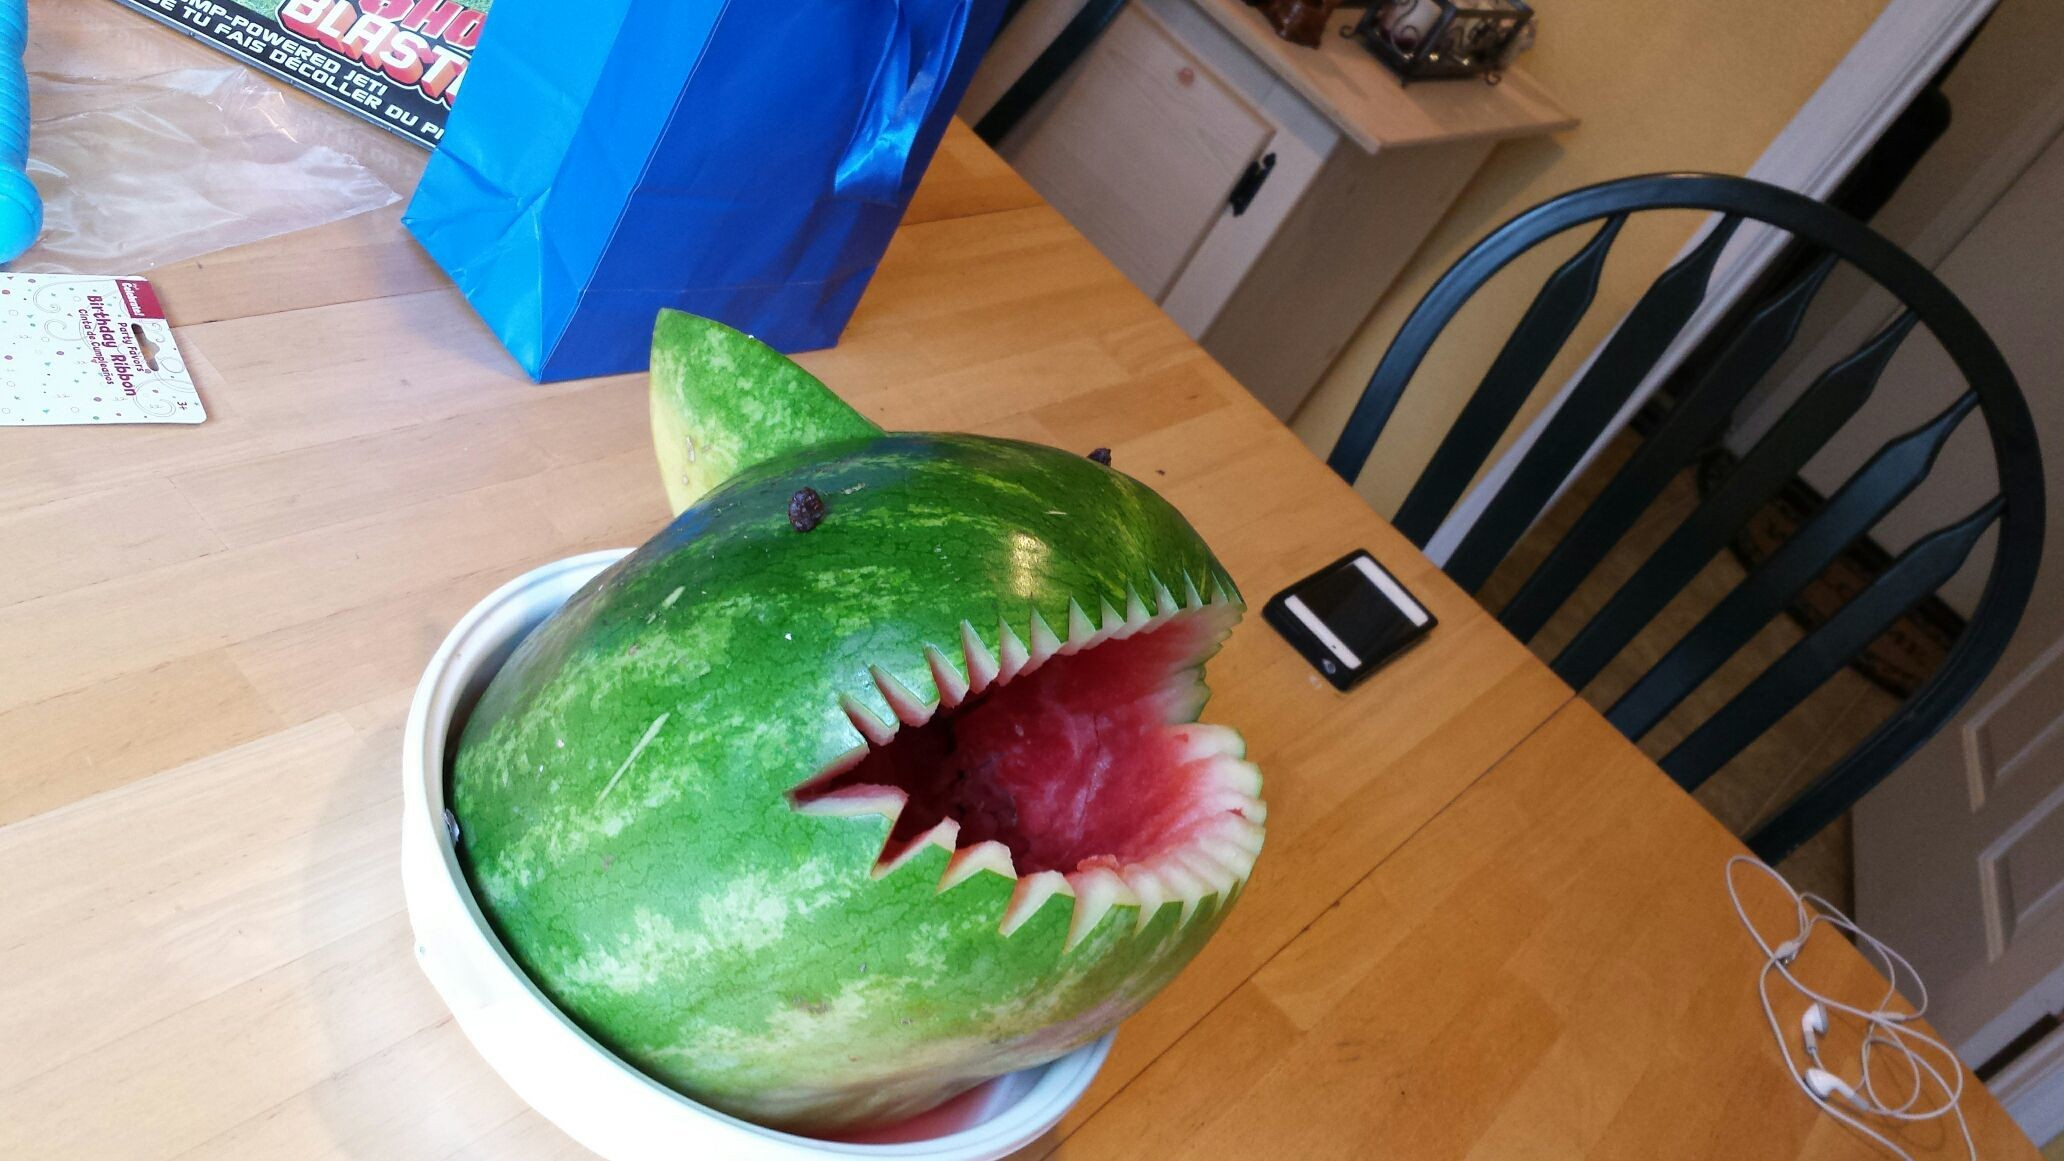 My watermelon shark. Clay ' s last birthday he wanted a watermelon party. We had a watermelon eating contest and a watermelon ball fit. He had soo much fun